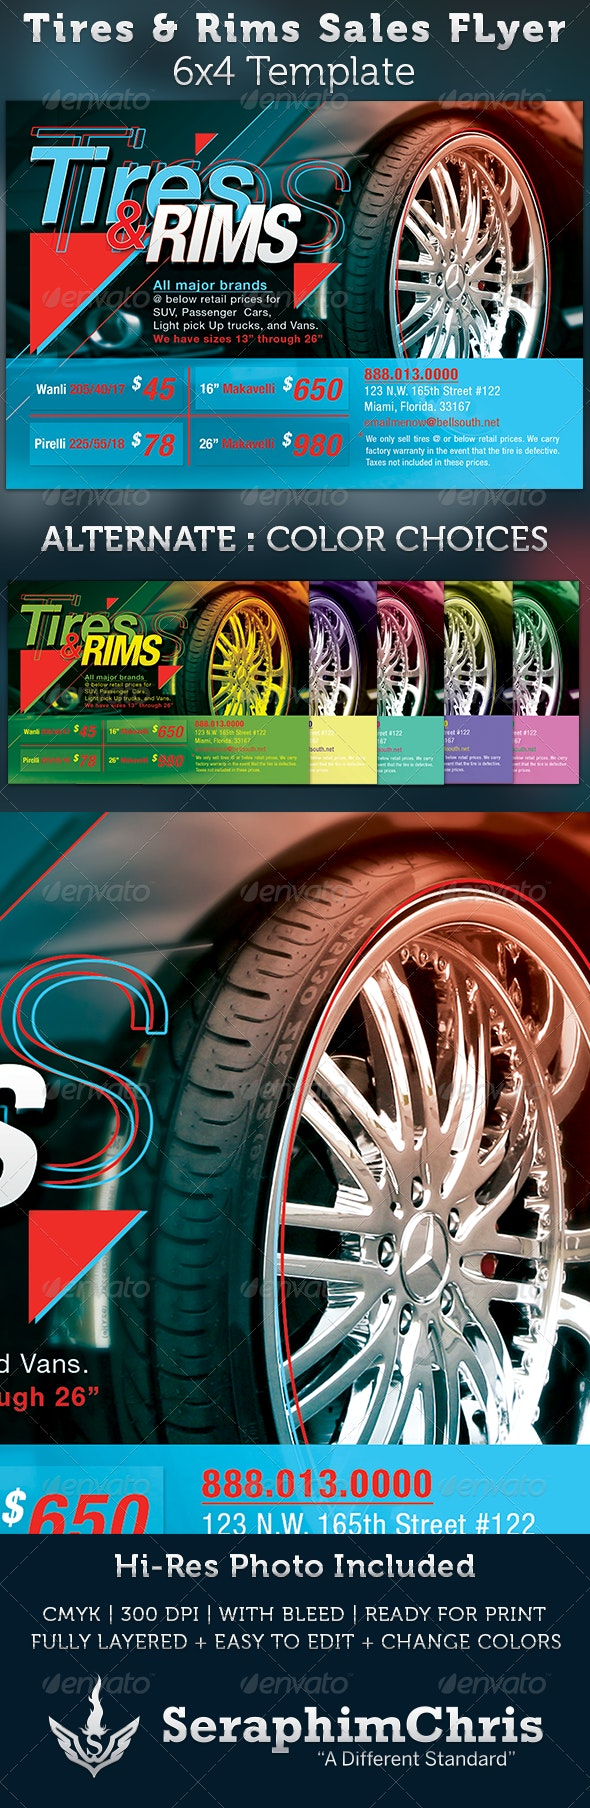 Tires and Rims Sales Ad Flyer Template - Commerce Flyers